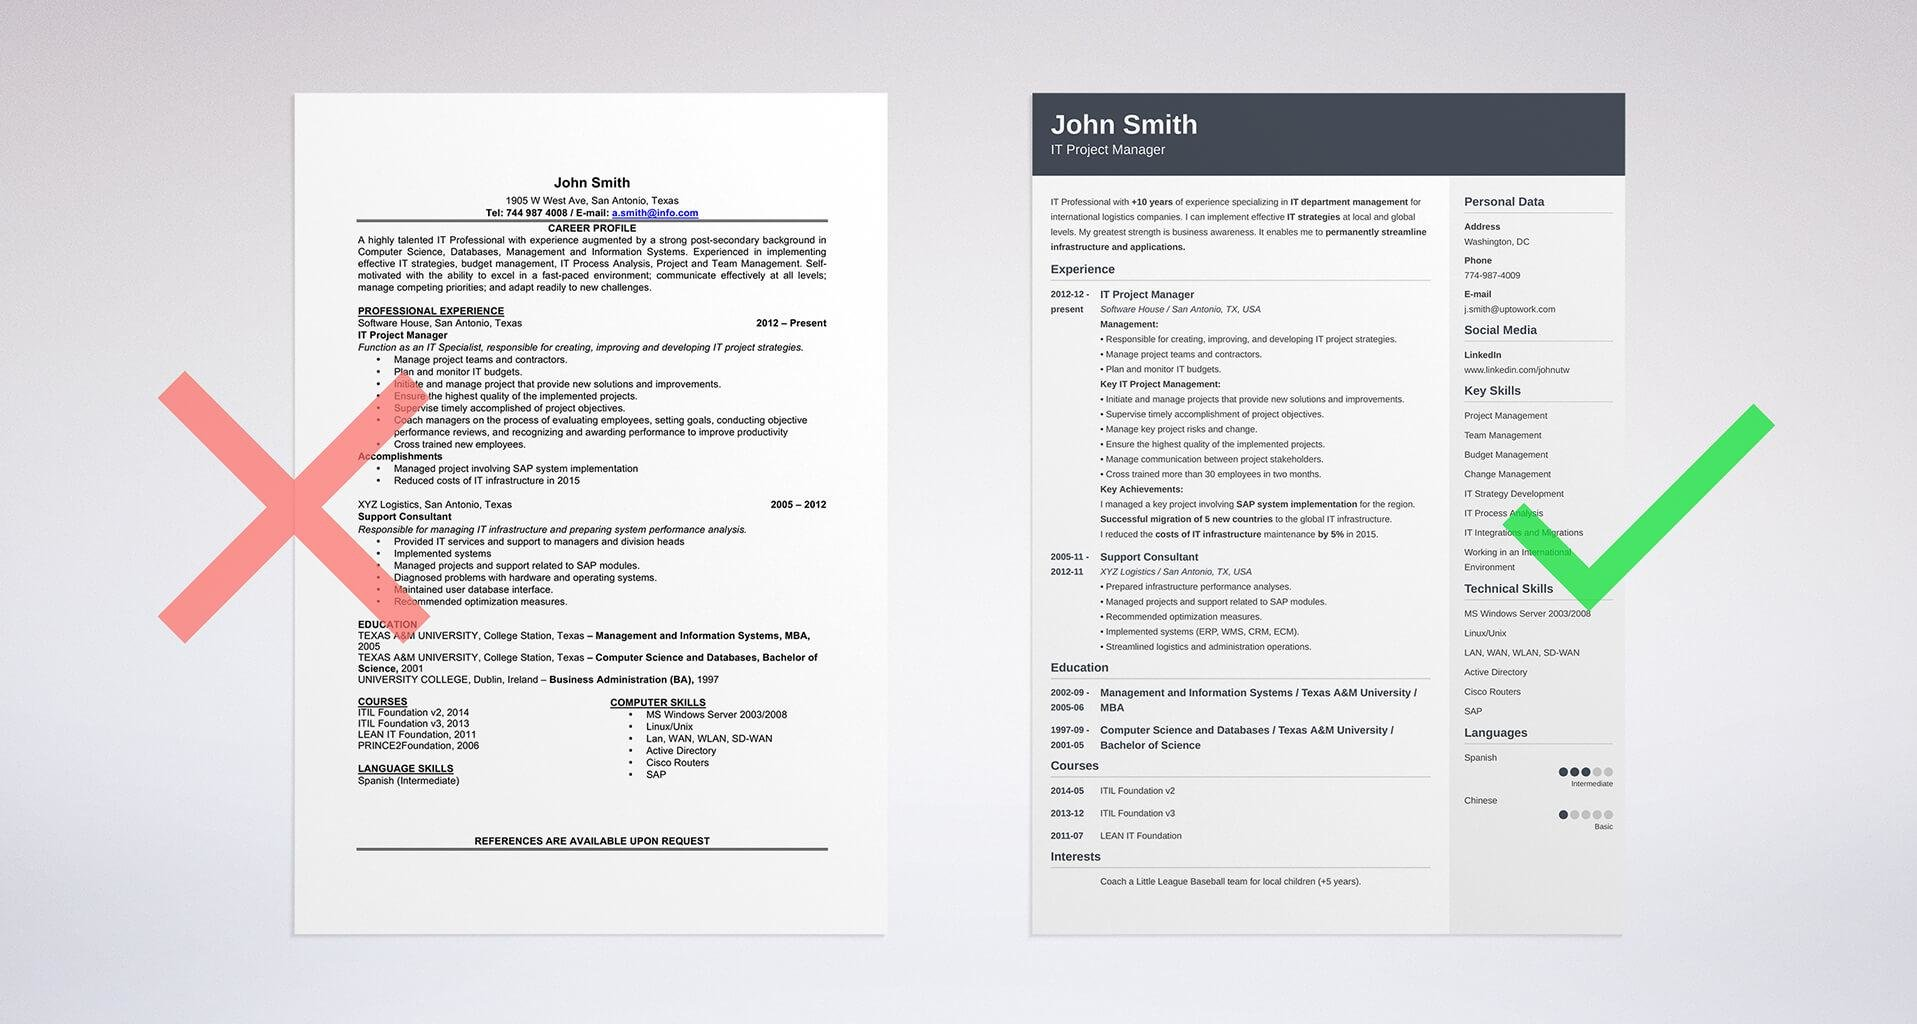 best resume format professional samples most effective example of formats for call center Resume Most Effective Resume Format